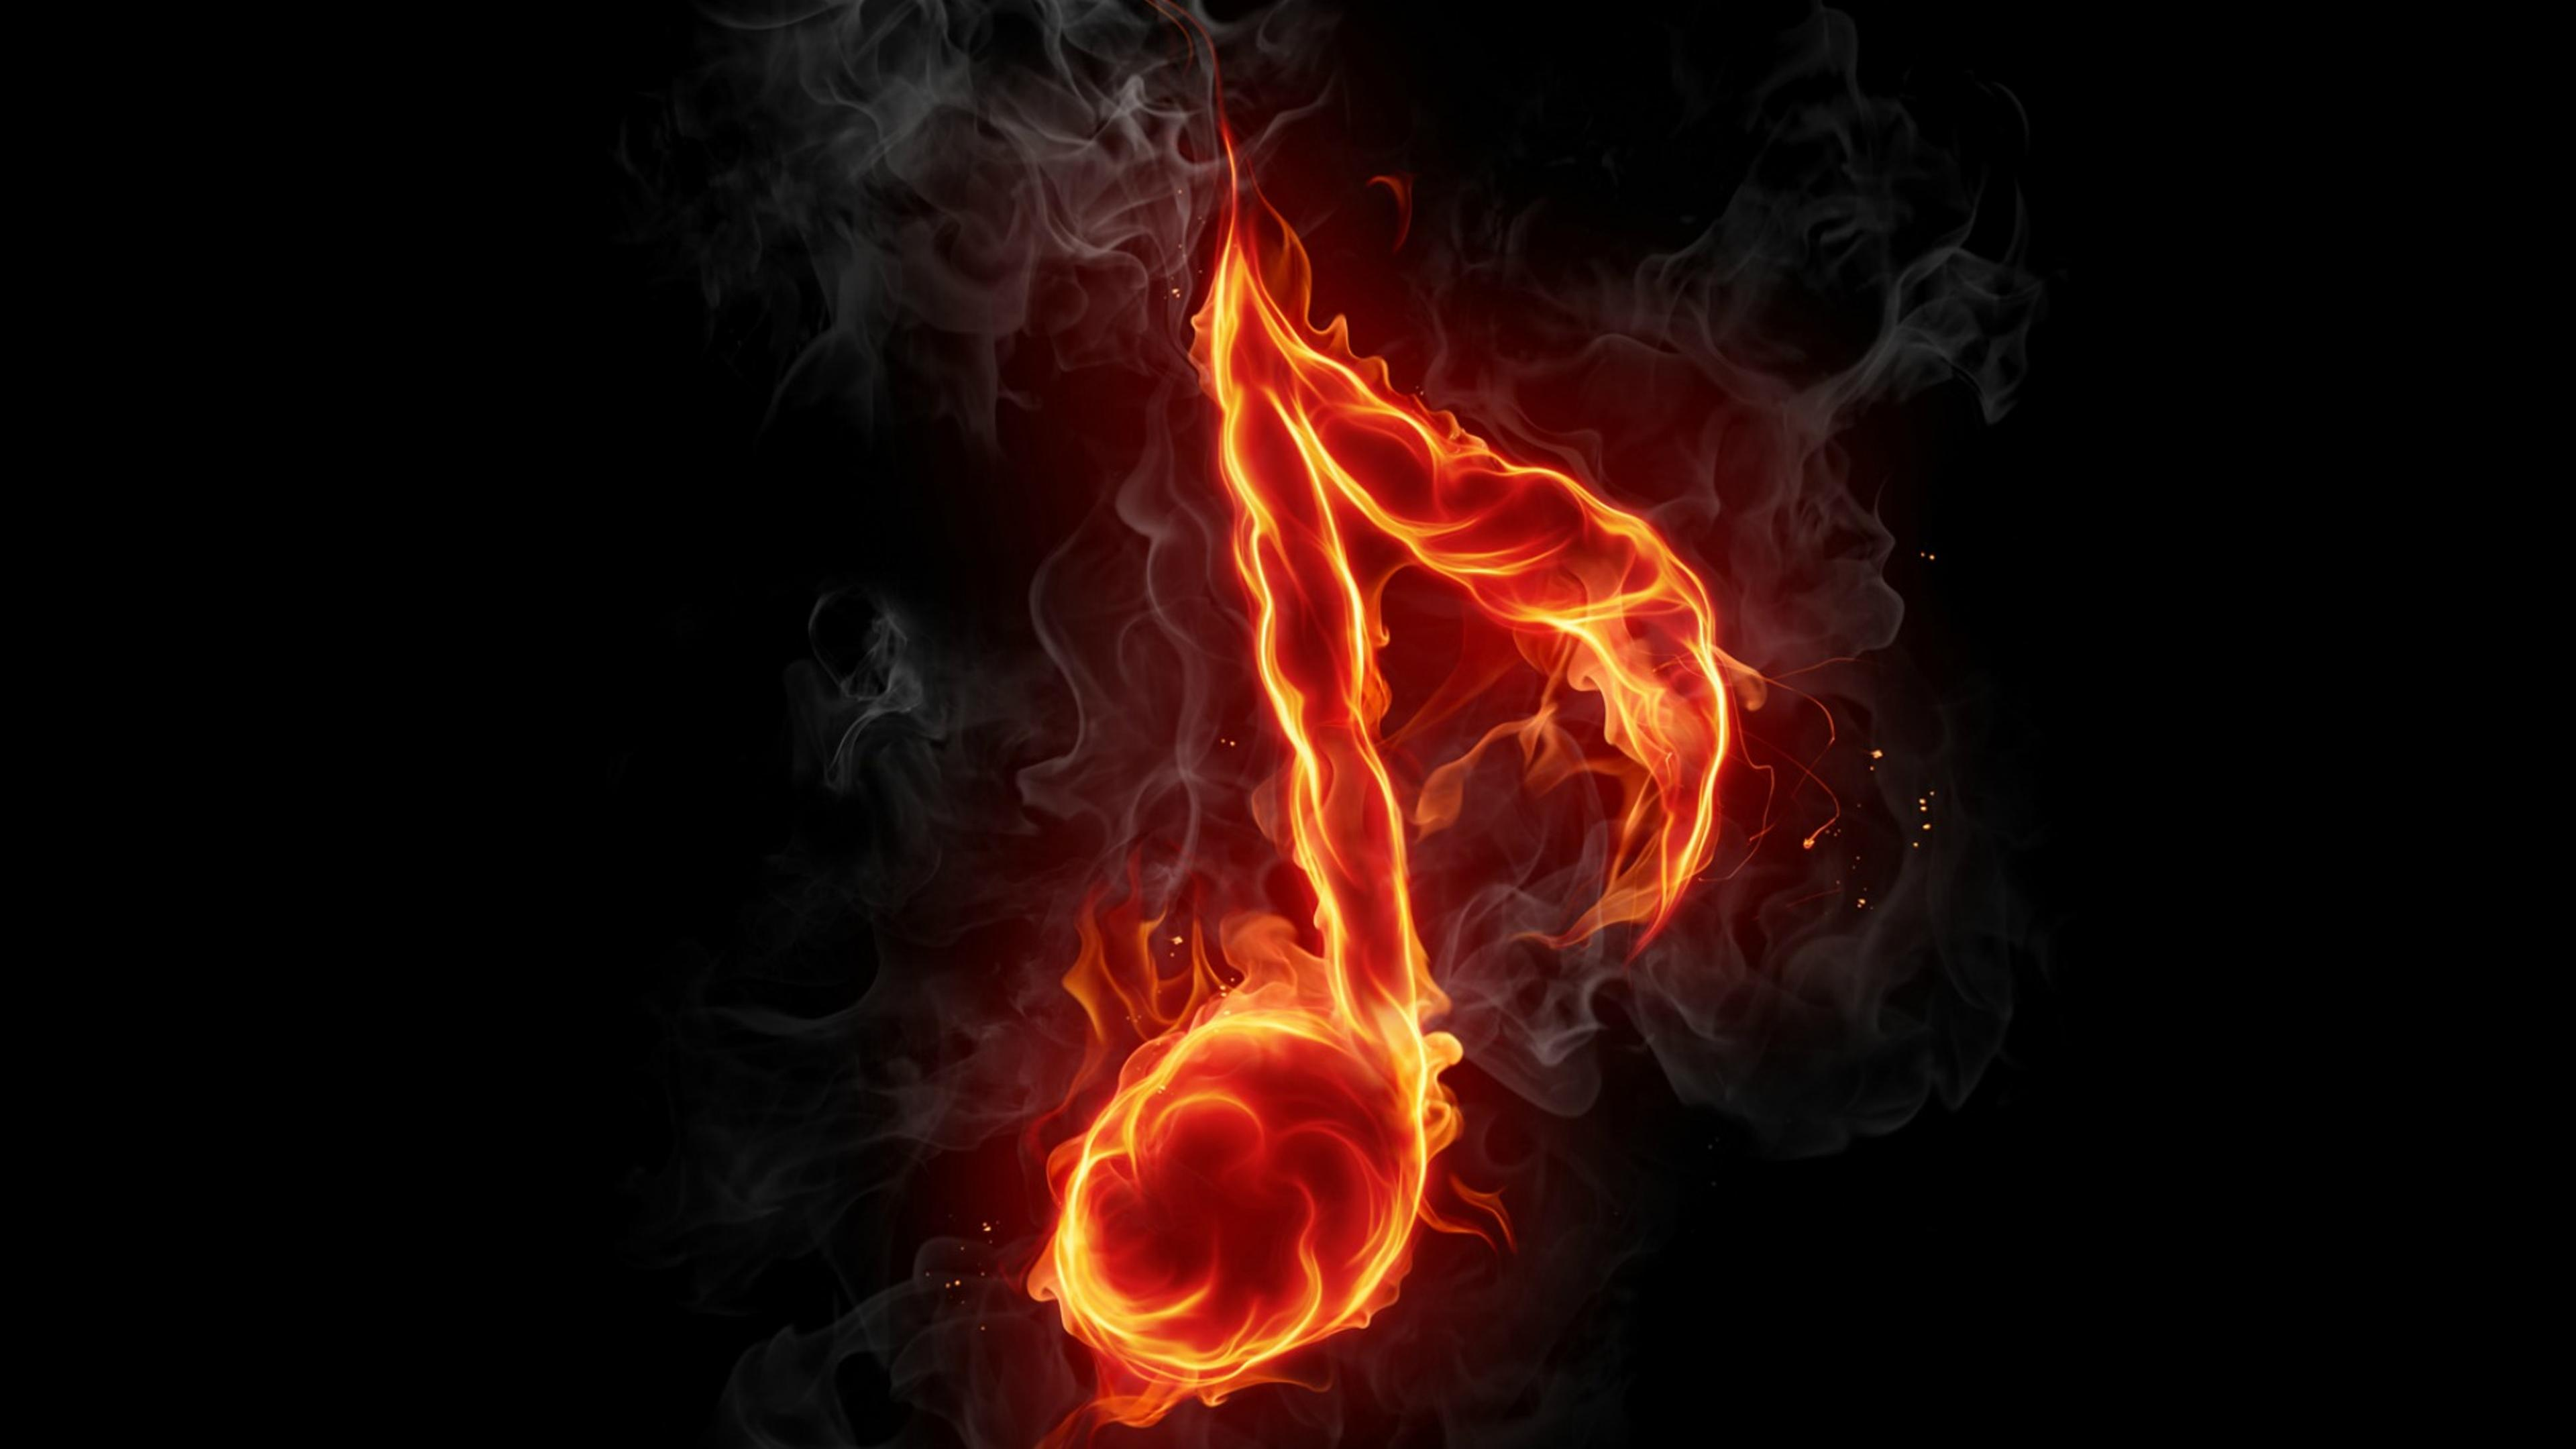 A Musical Note In Flames On The Black Background Wallpaper